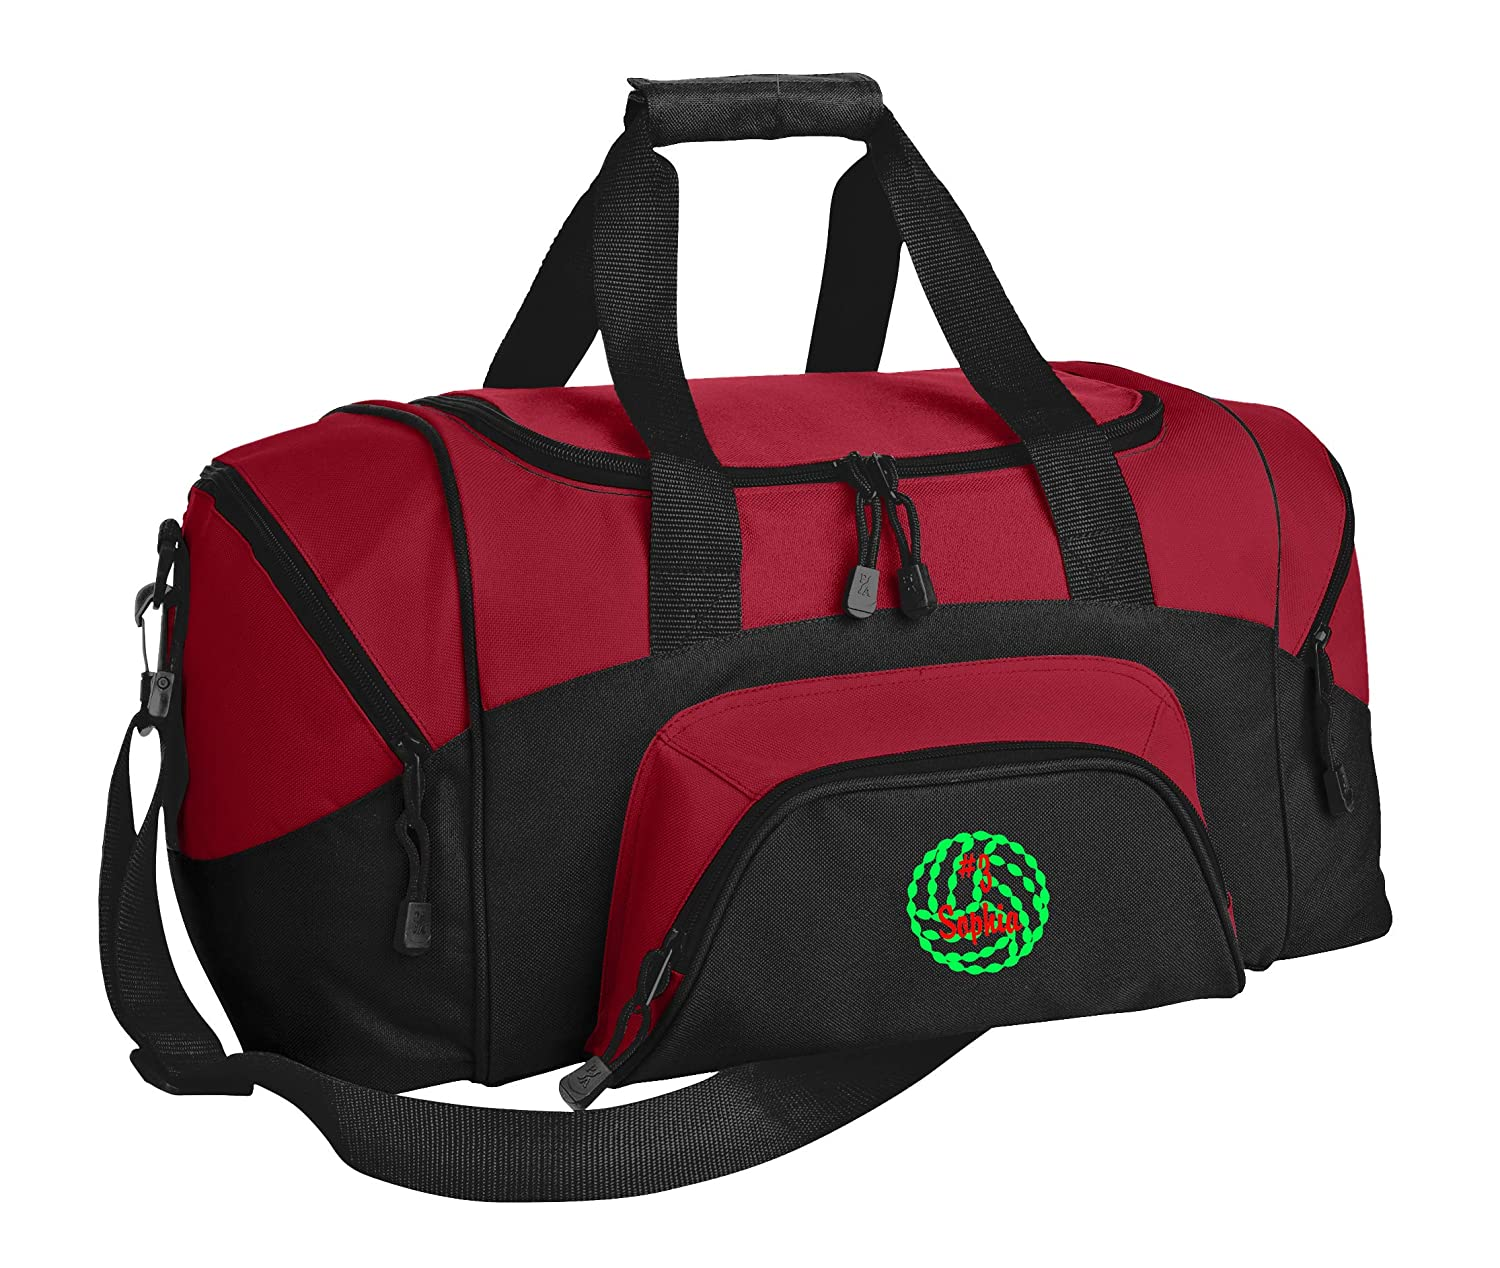 Personalized Volleyball Gym Duffel Bag with Custom Text Easy Organizing Sports Bag with Customizable Embroidered Monogram Design True Red Black